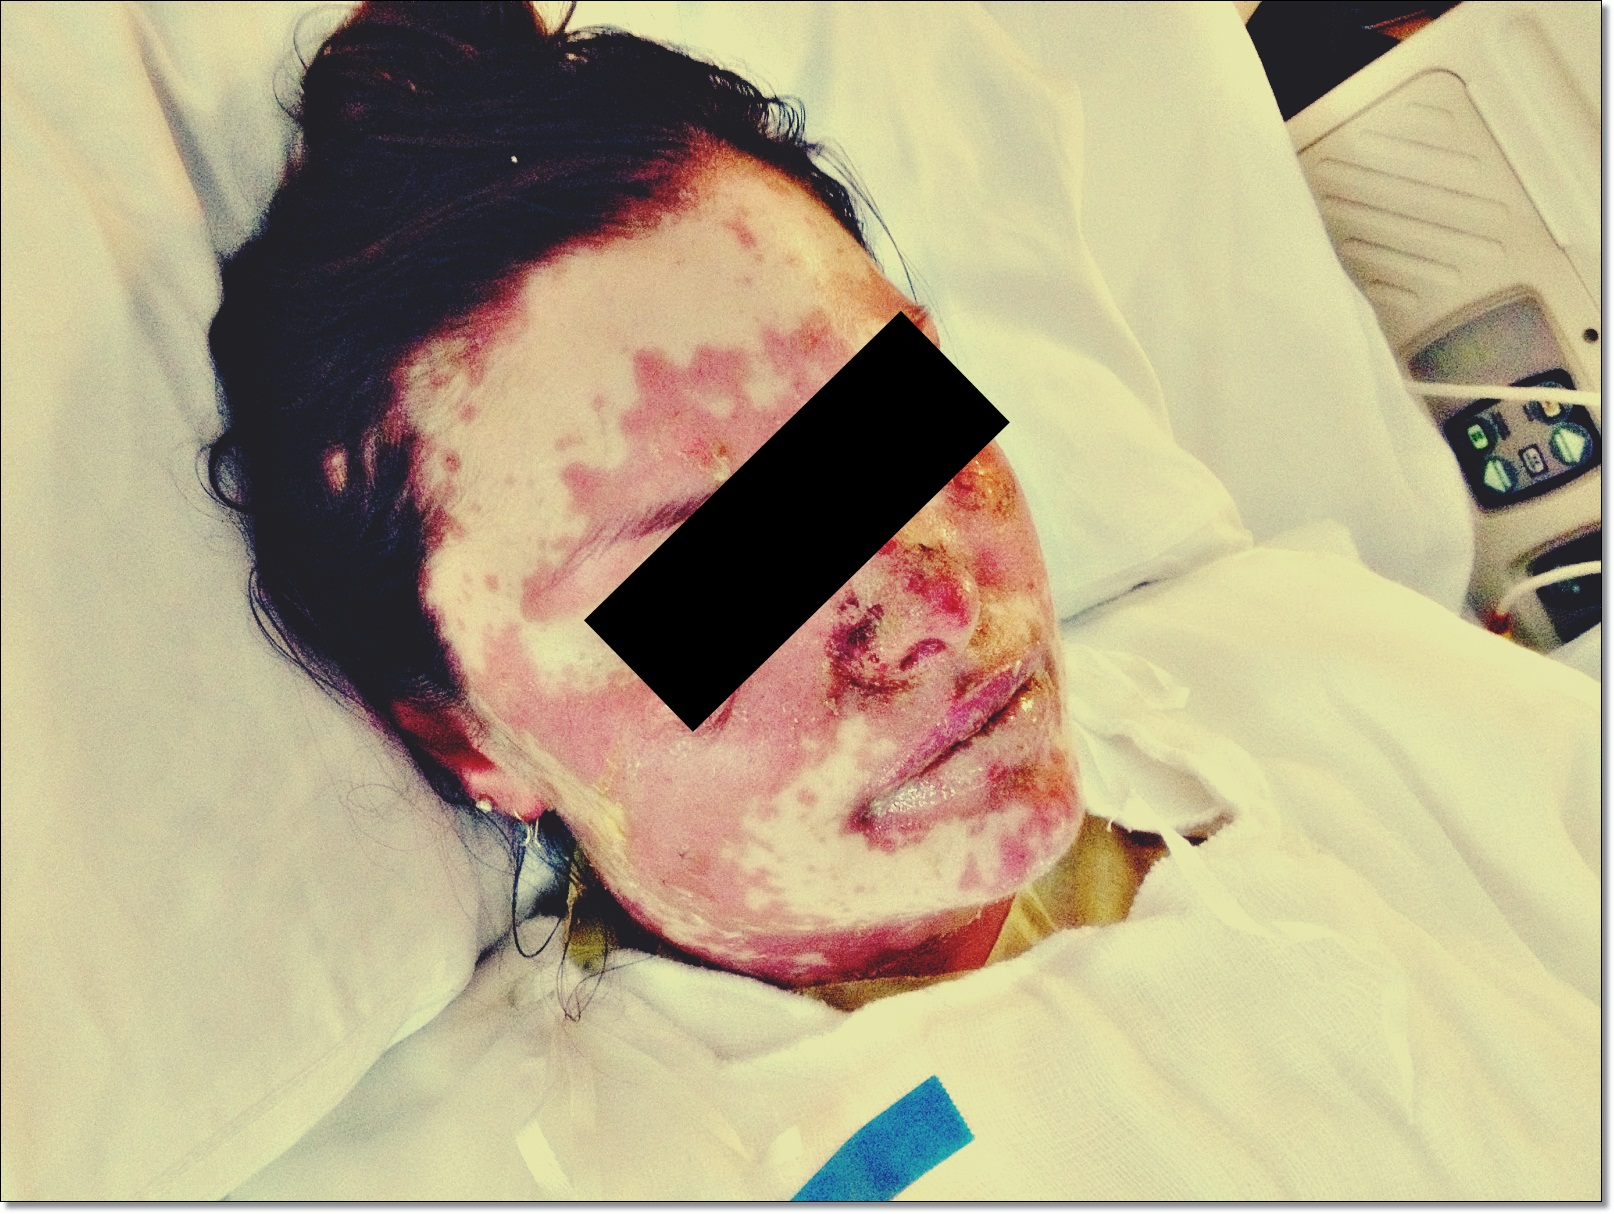 stevens-johnson-syndrome-rash-images